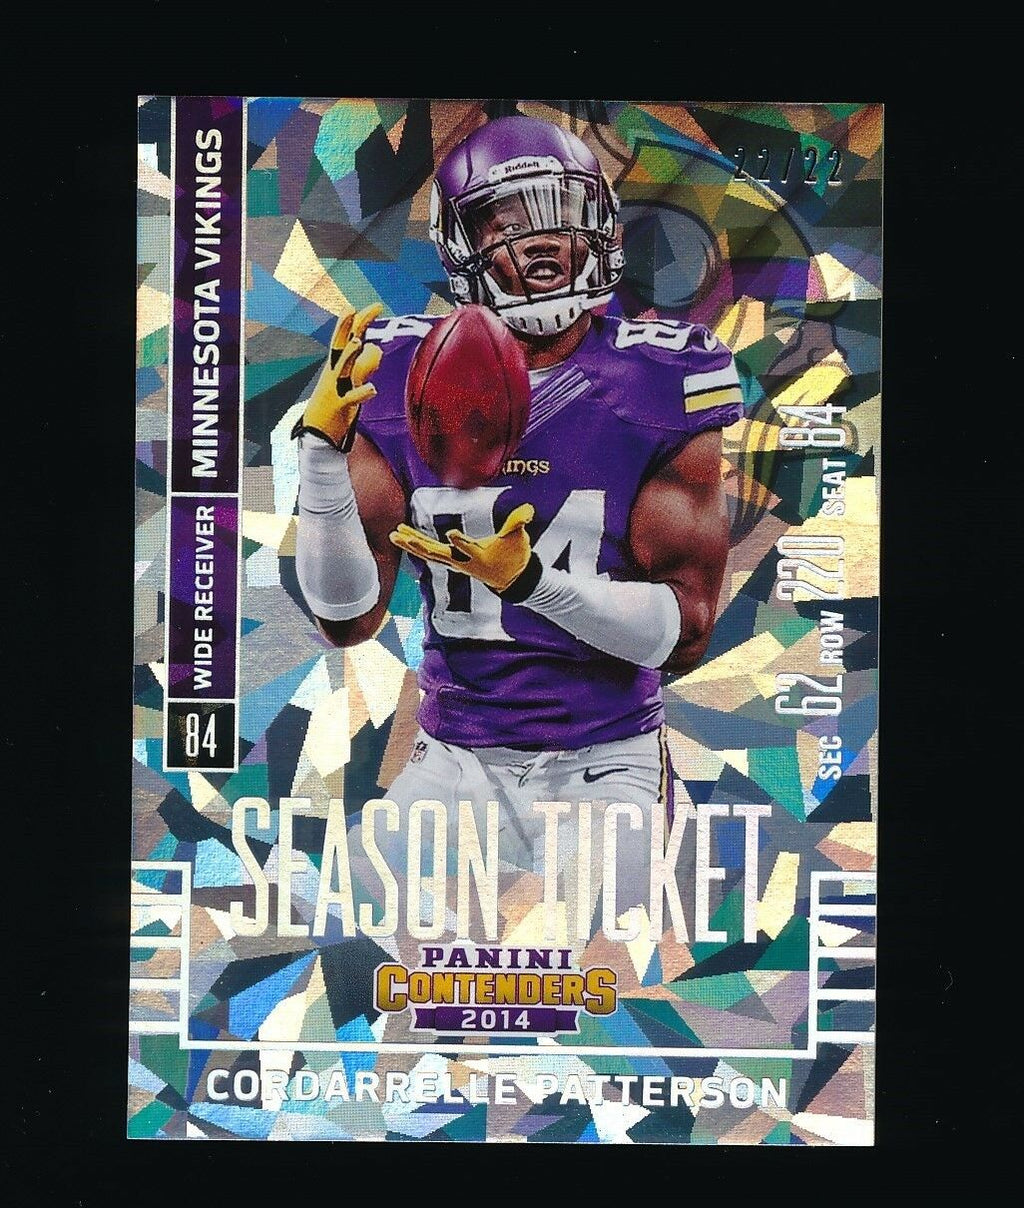 CORDARRELLE PATTERSON 2014 PANINI CONTENDERS CRACKED ICE 22/22 *VIKINGS*